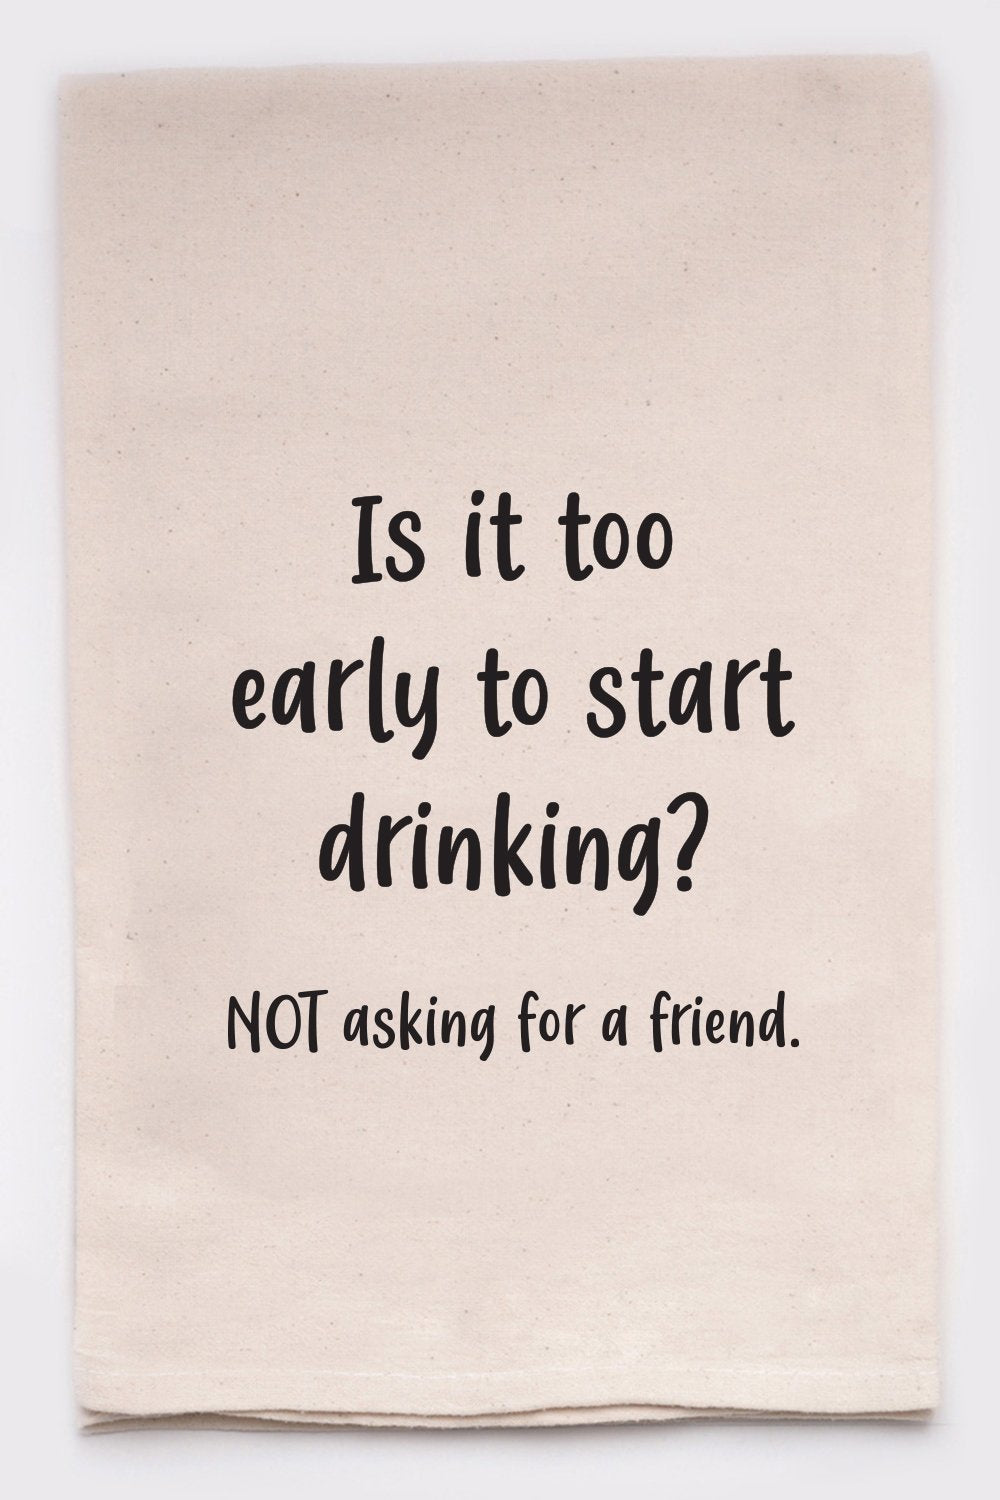 Is it too early to start drinking? NOT asking for a friend. - CityBarnCountryPenthouse